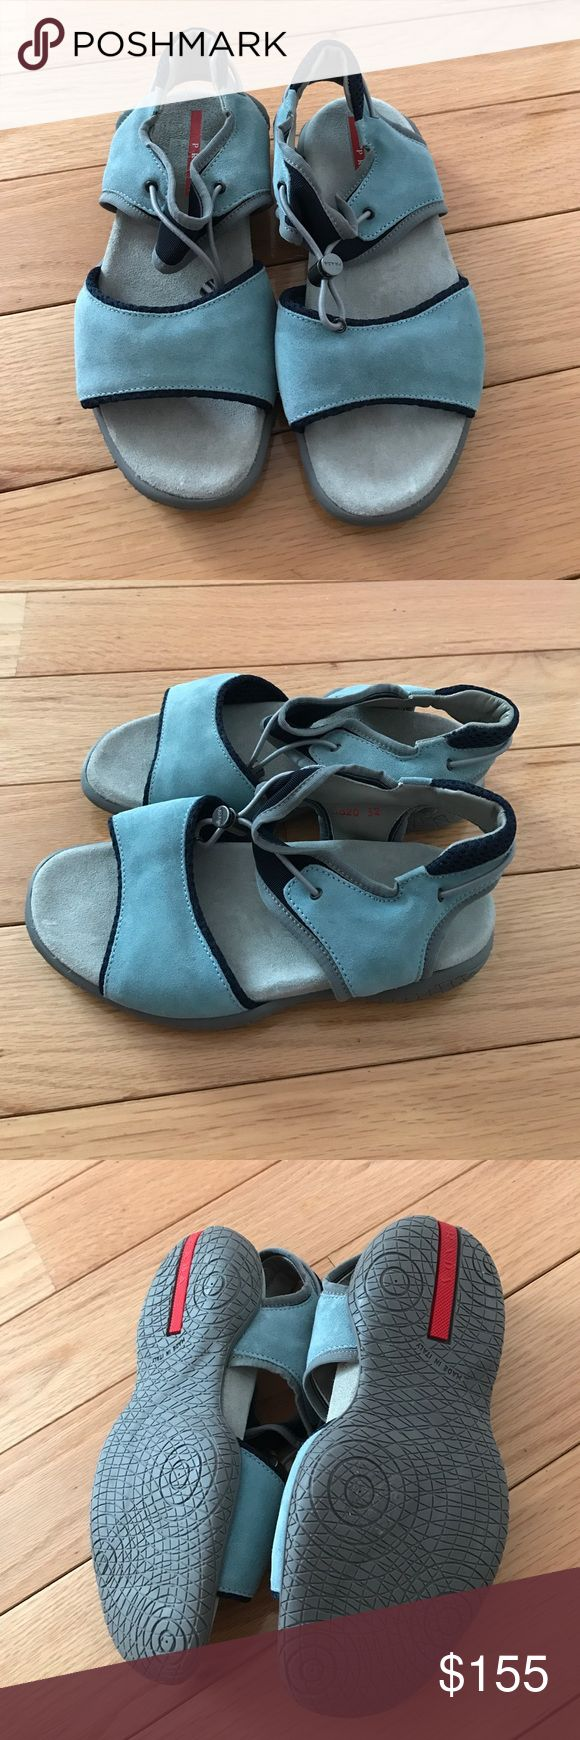 Prada sport girls sandals blue Sz 32 new Brand new Prada baby blue suede sandals with grey sole and navy trim adjustable toggle pull rubber soles Sz 32 Prada Shoes Sandals & Flip Flops